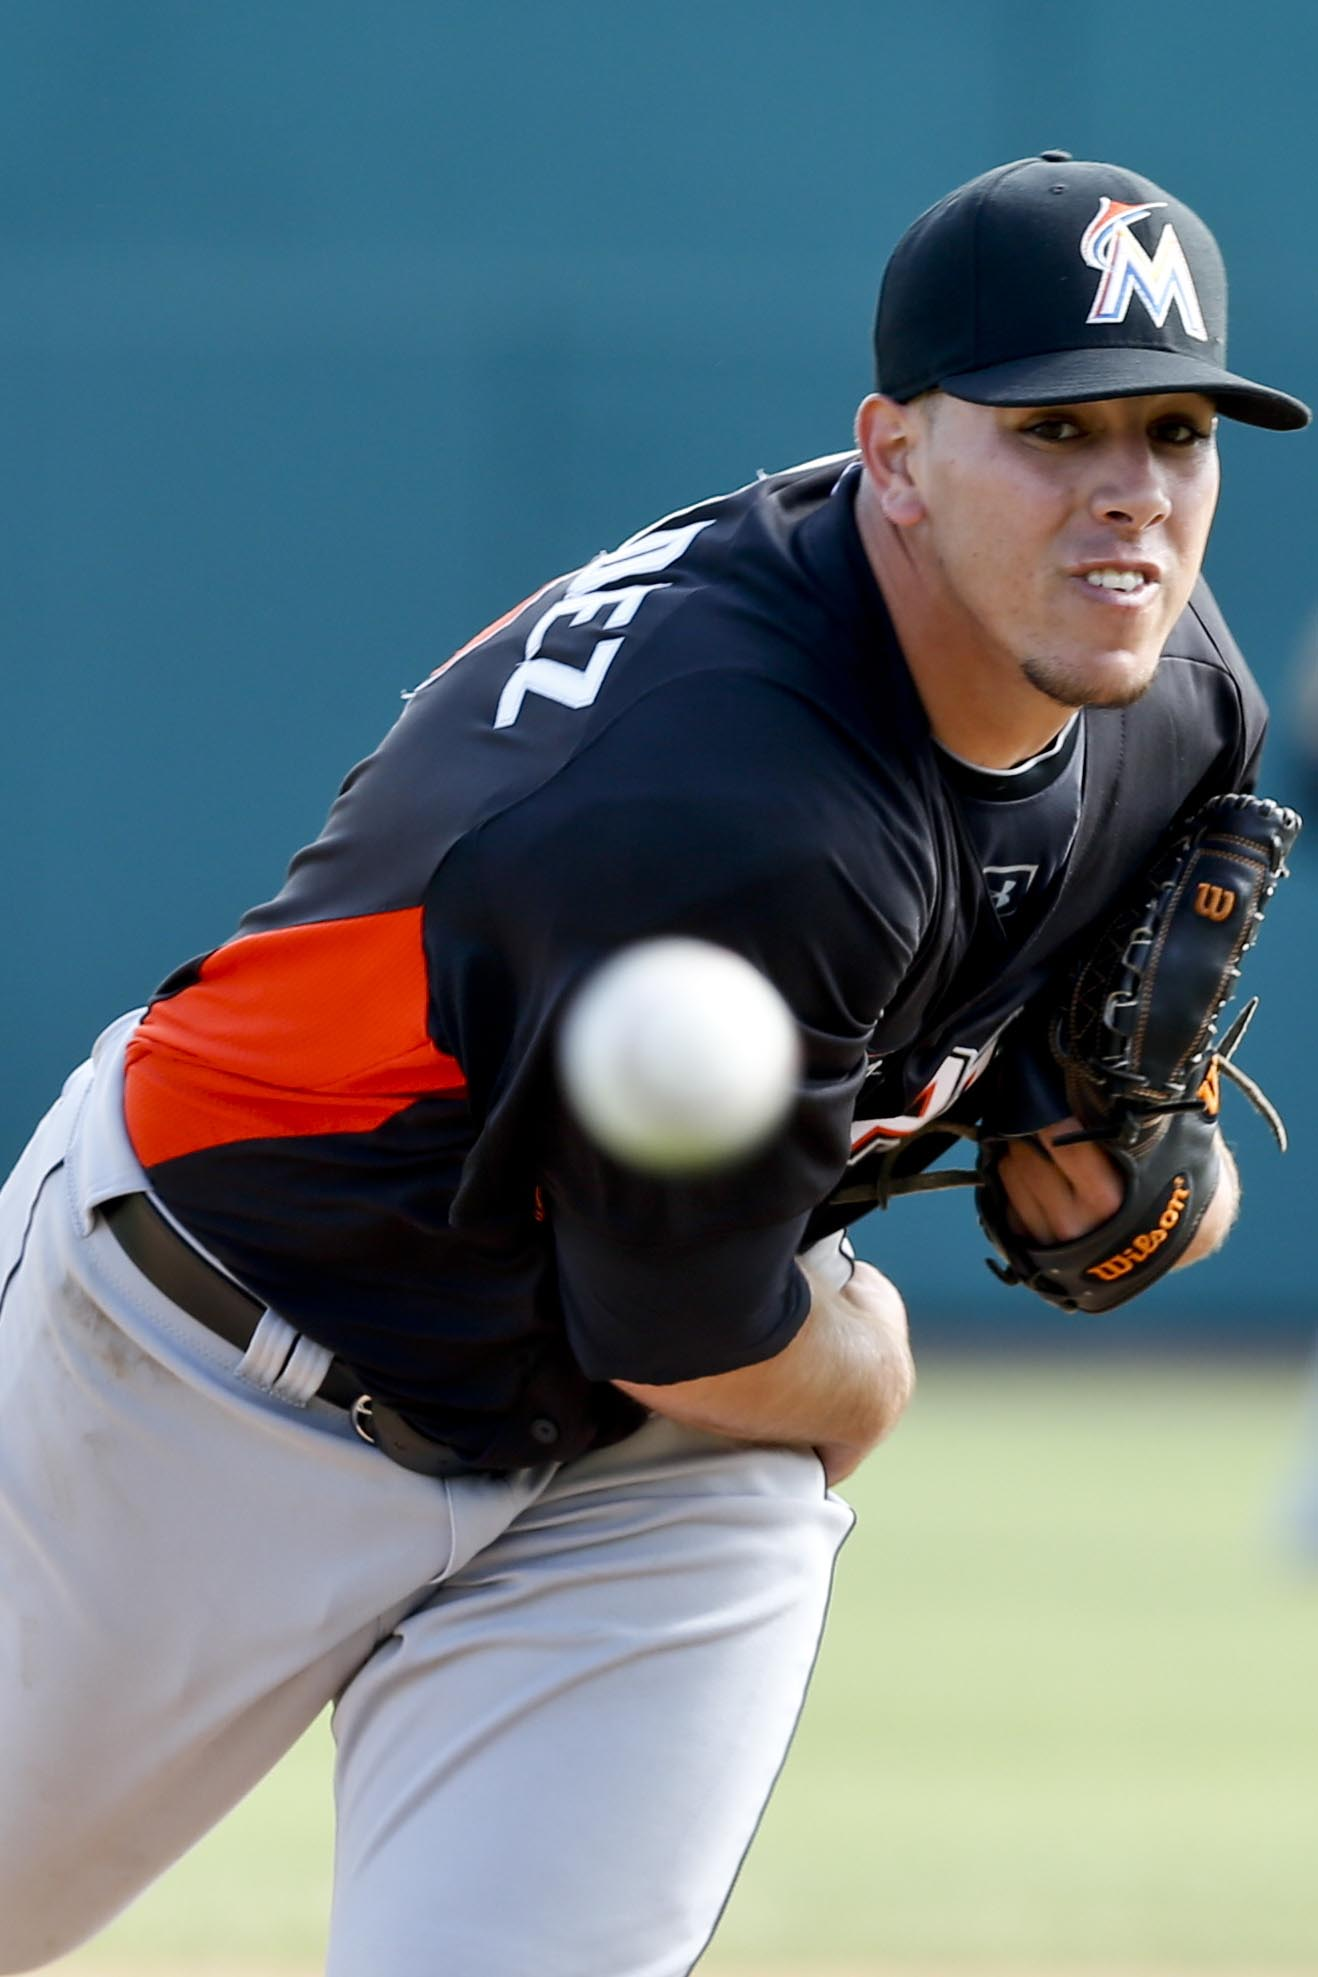 Jose Fernandez has taken the fast track to Miami. (USAT)